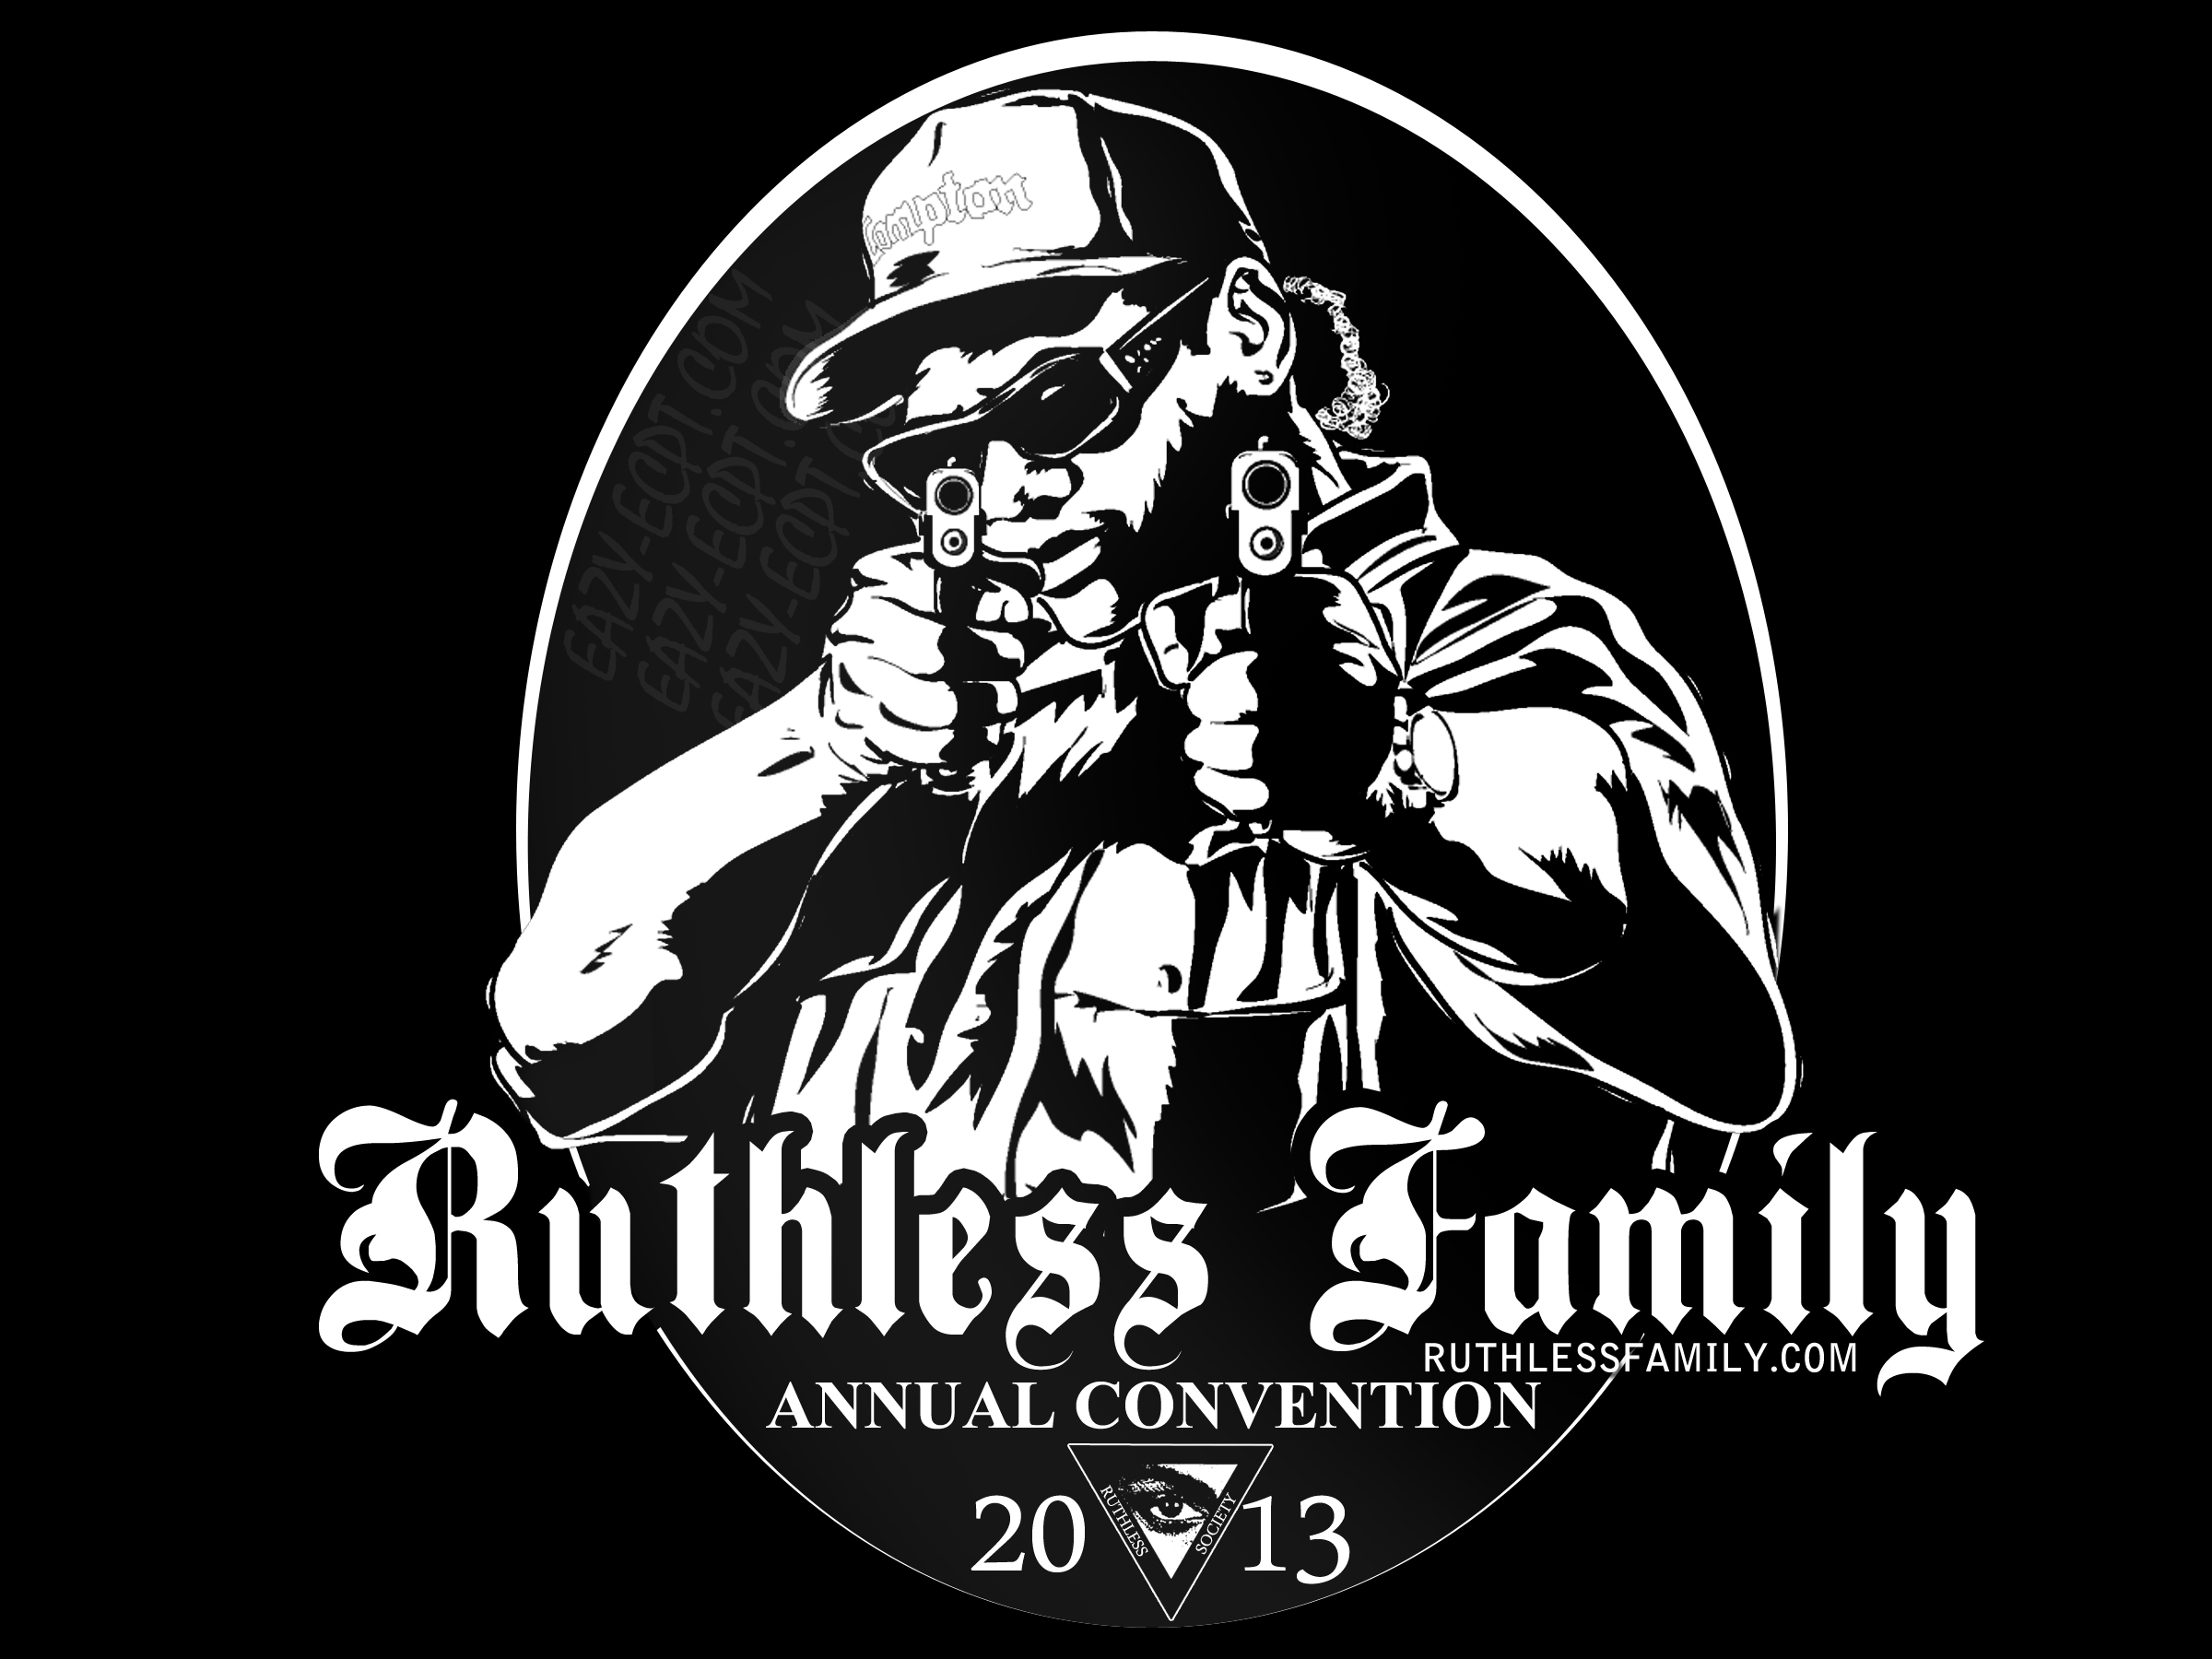 DJ Ruthless Ruthless and Fenix - Back2Skool EP